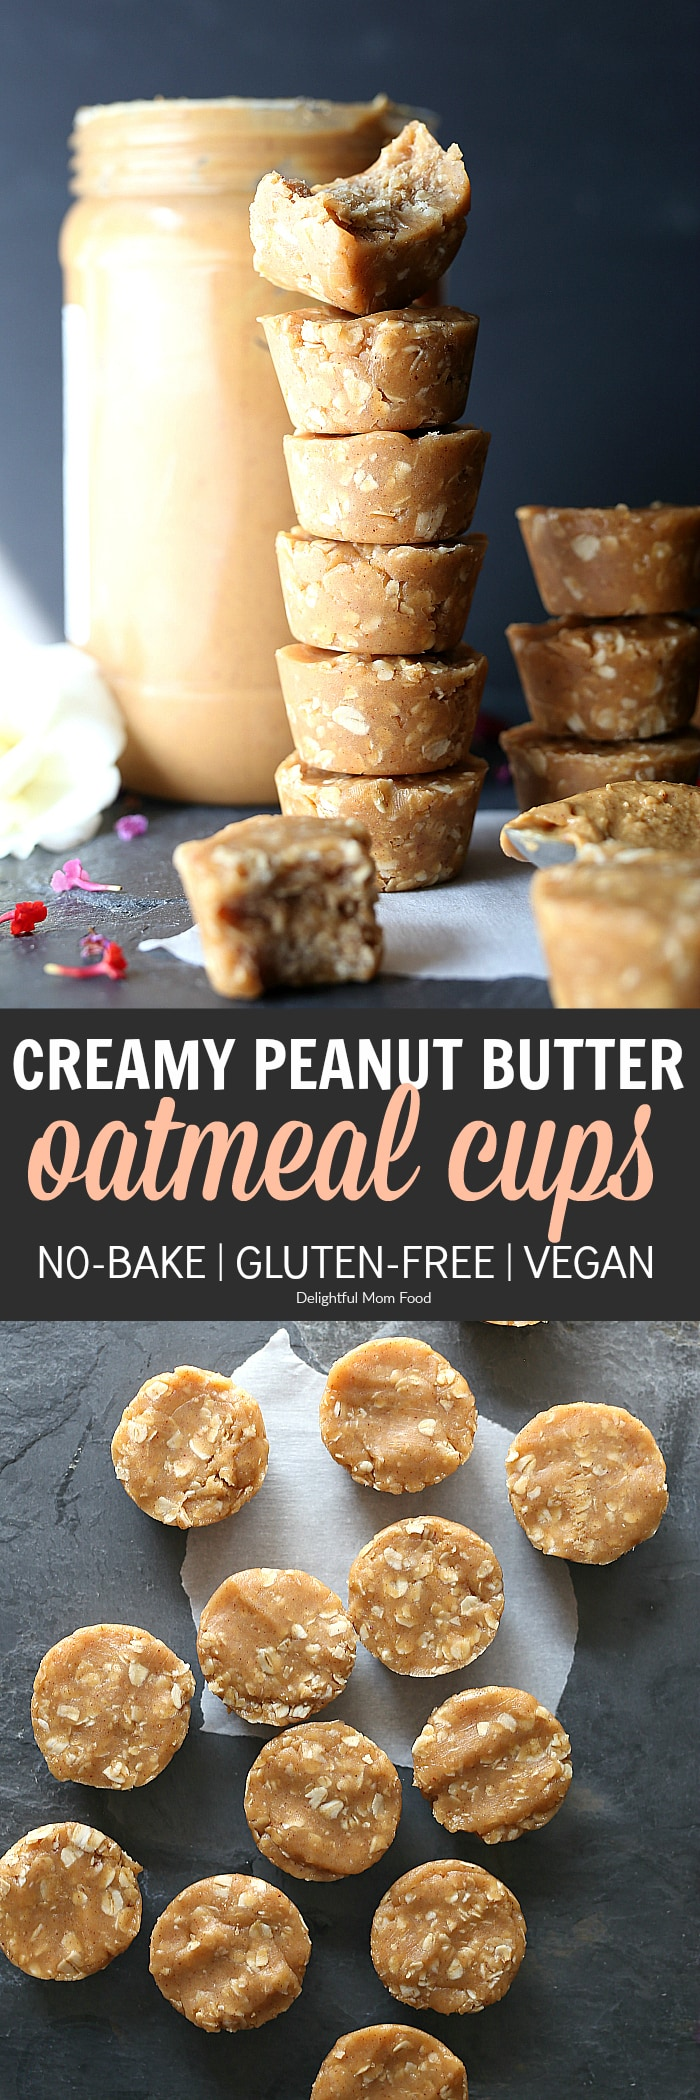 Peanut Butter Oatmeal Cups -Ridiculously good mini peanut butter oatmeal cups! These are the best no-bake peanut butter and oat cups that taste like a cookie, are vegan, and gluten-free made with healthy ingredients! #nobake #peanutbutter #oatmeal #oats #cups #cupcake #cookies #easy #healthy #glutenfree #vegan #creamy | Recipe at delightfulmomfood.com